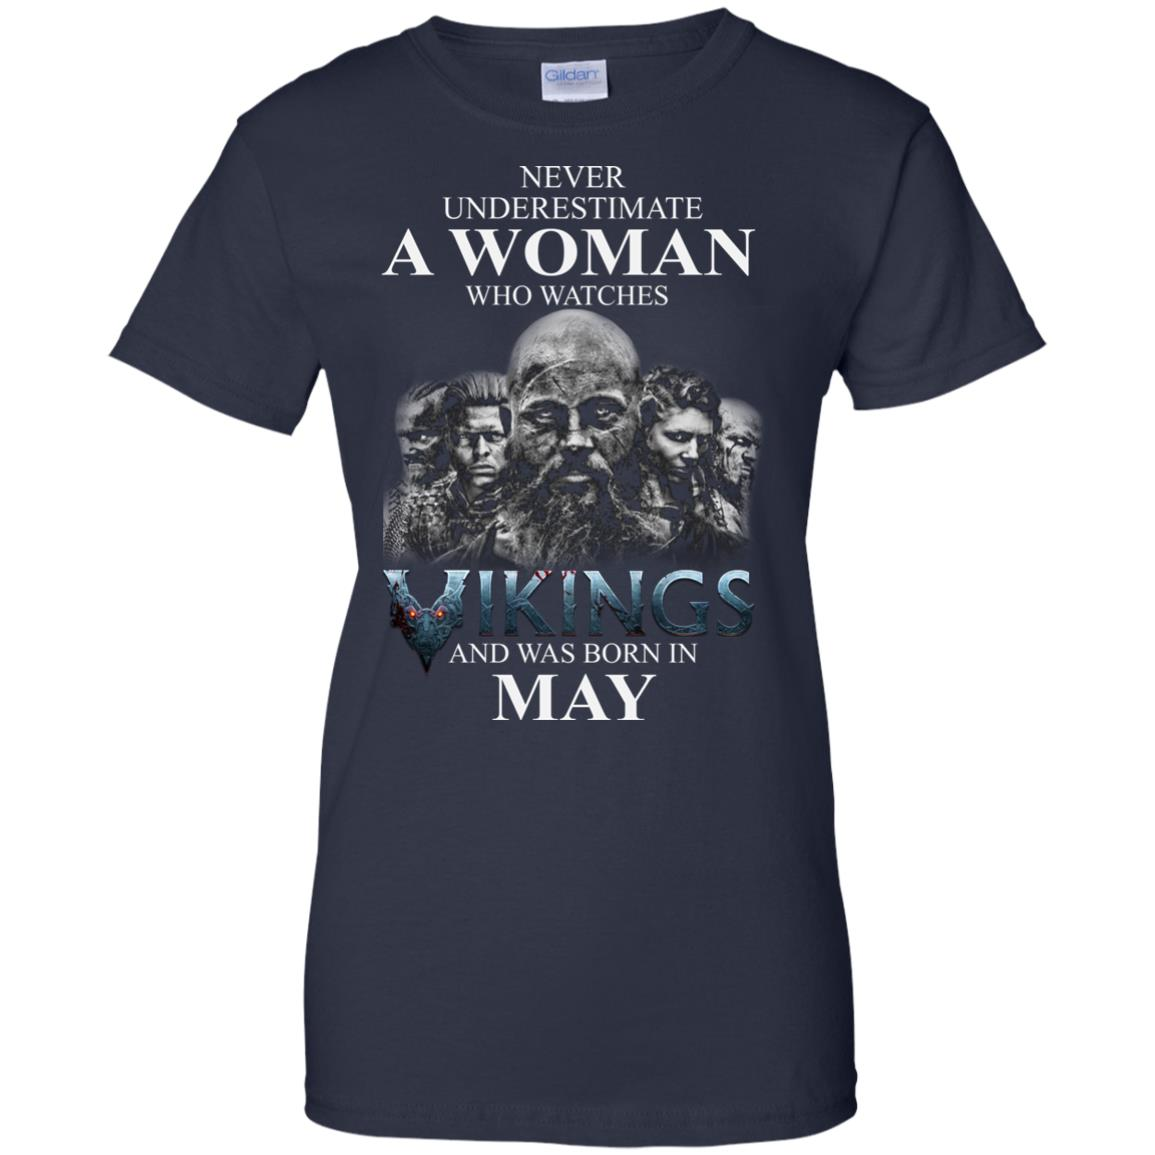 image 1314 - Never Underestimate A woman who watches Vikings and was born in May shirt